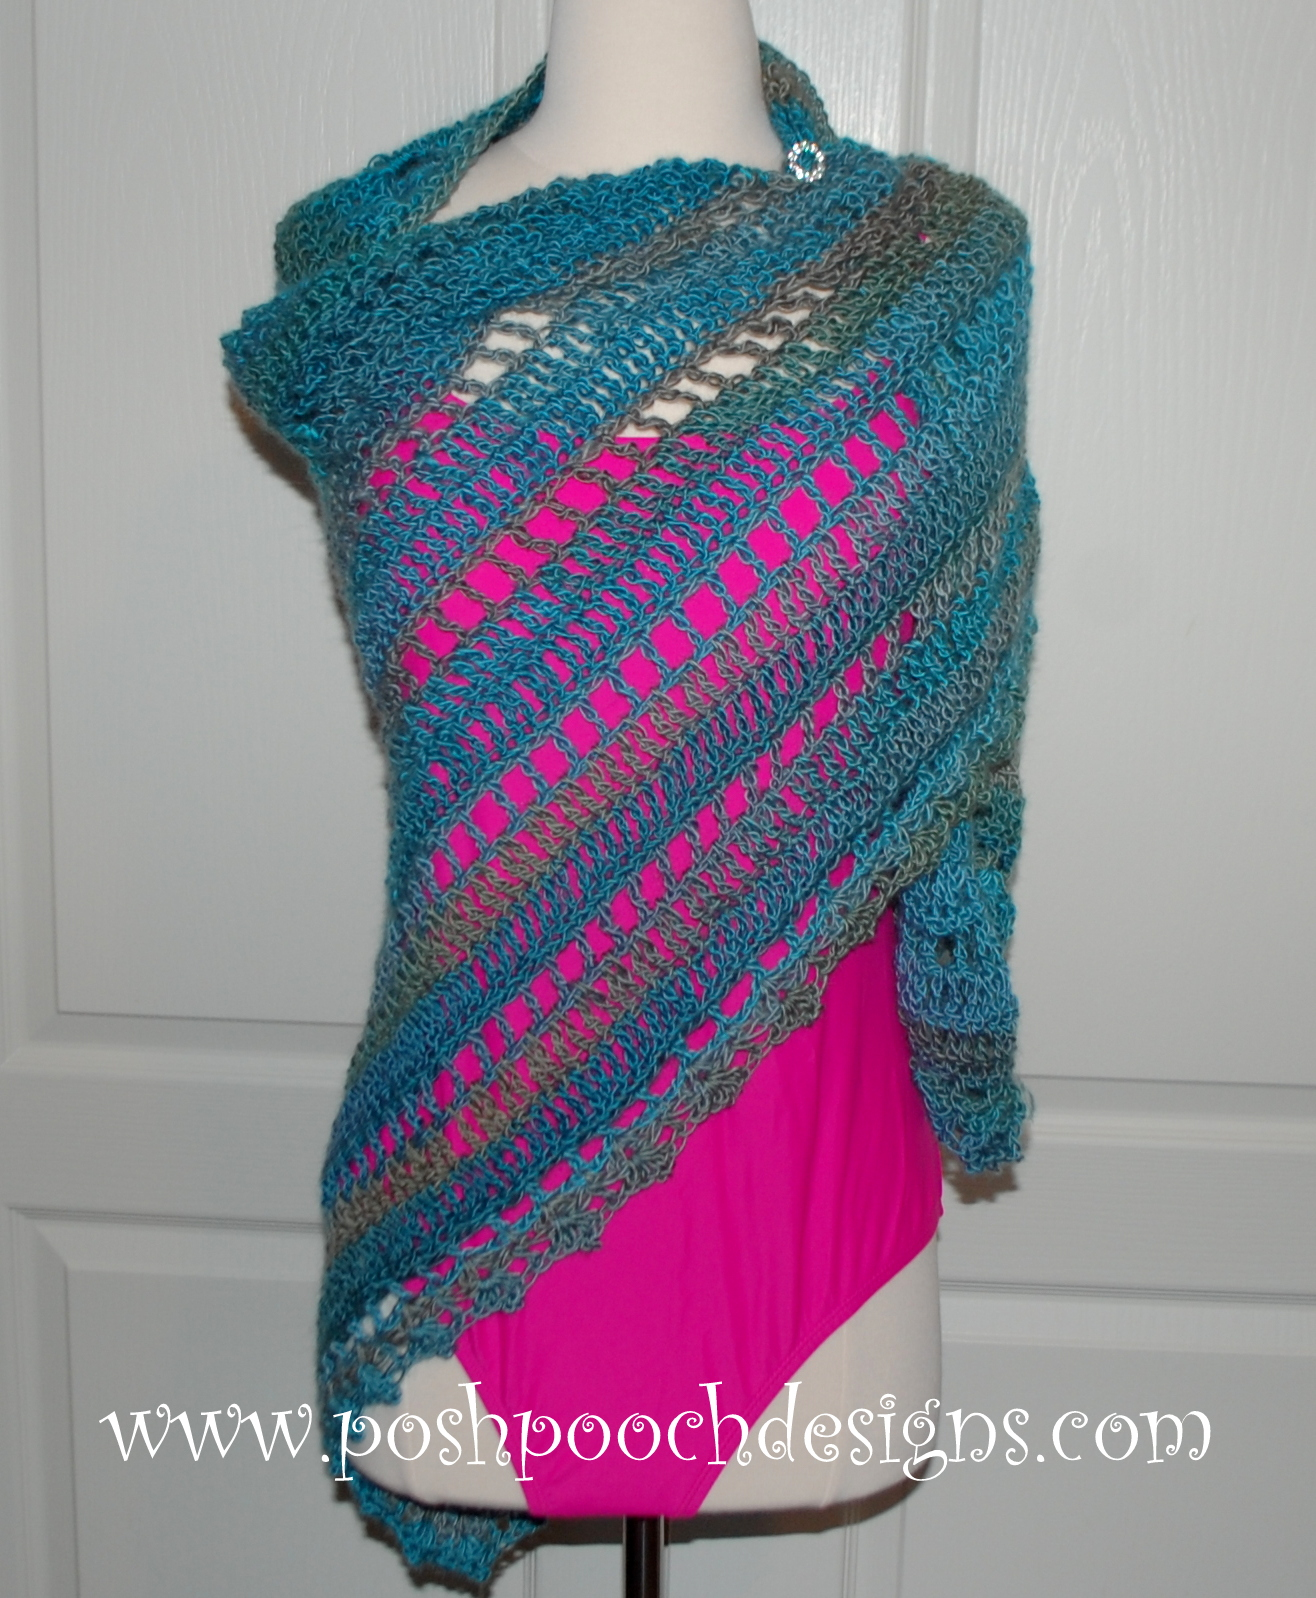 Free Crochet Patterns Dog Clothes : Posh Pooch Designs Dog Clothes: Beach Vacation Shawl Free ...